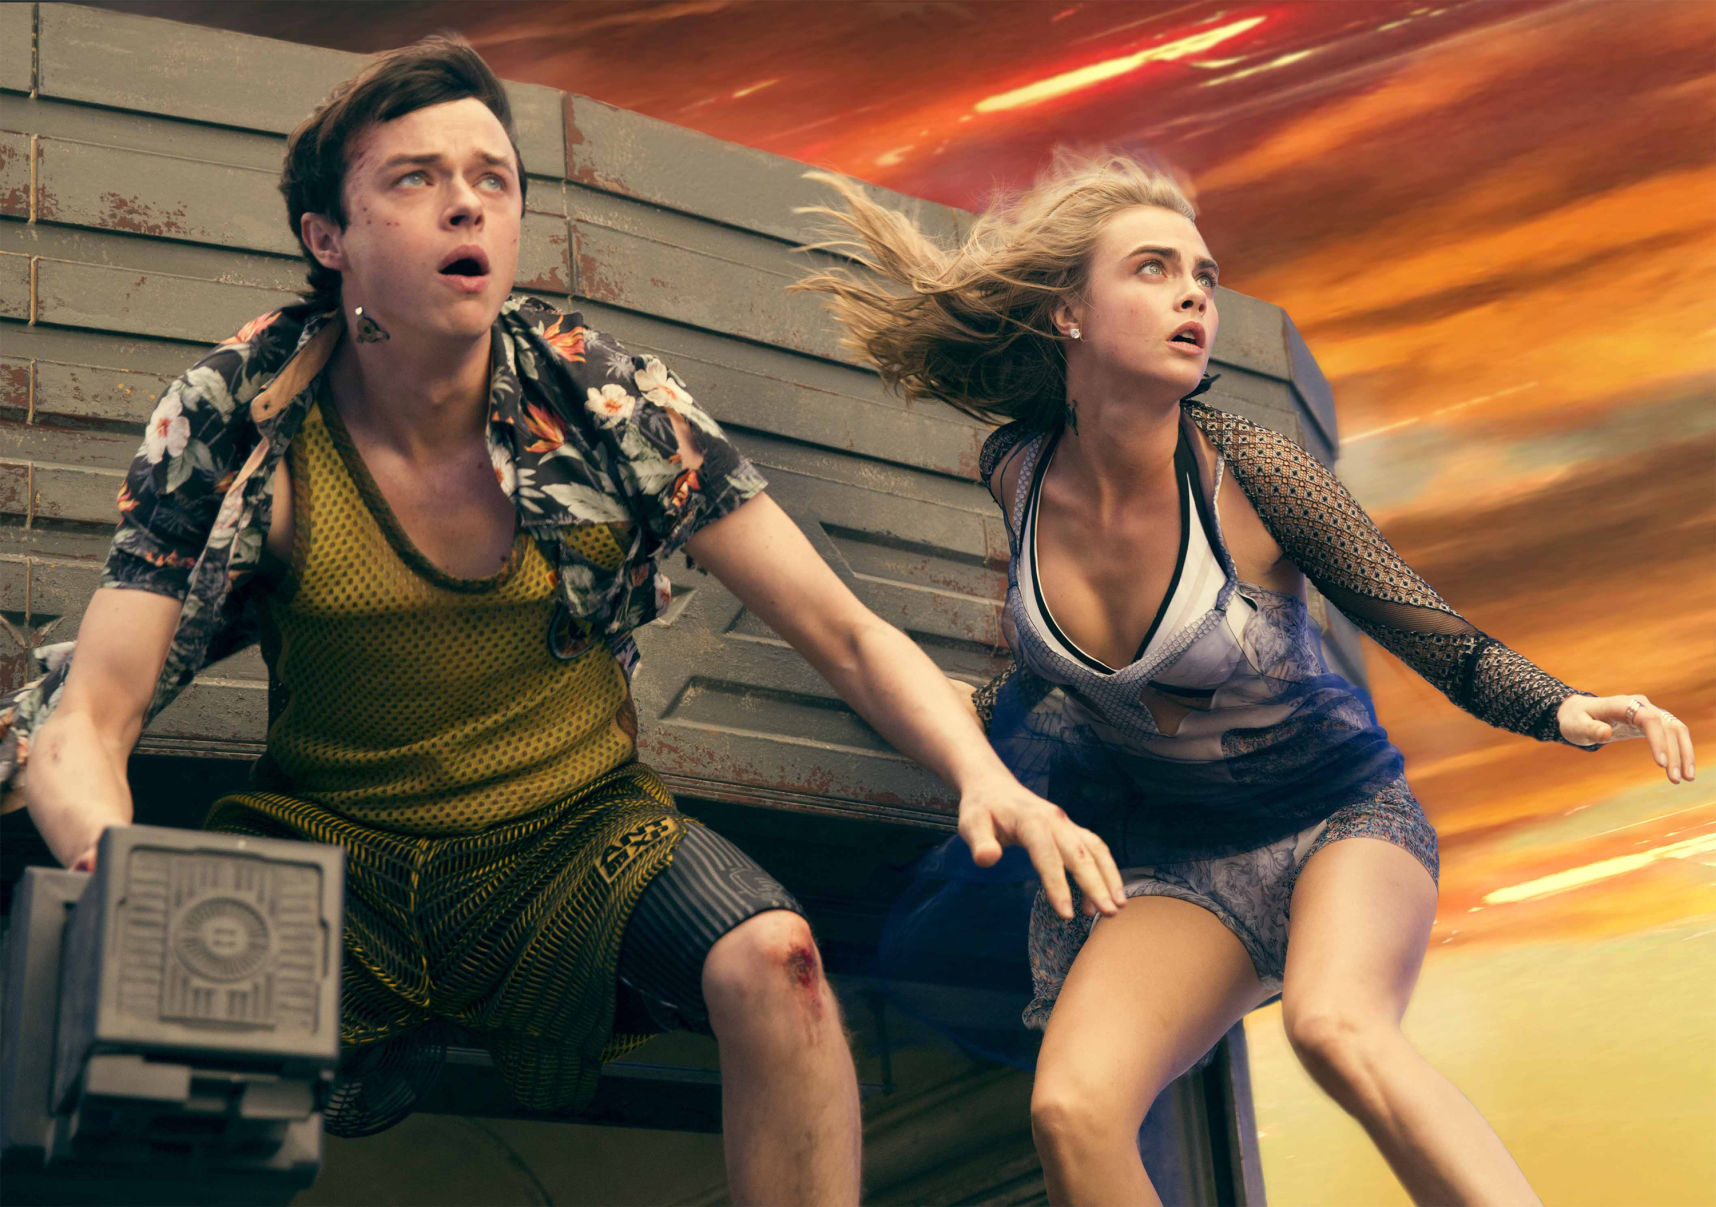 Cara Delevingne heading for an Oscar says Valerian director Luc Besson